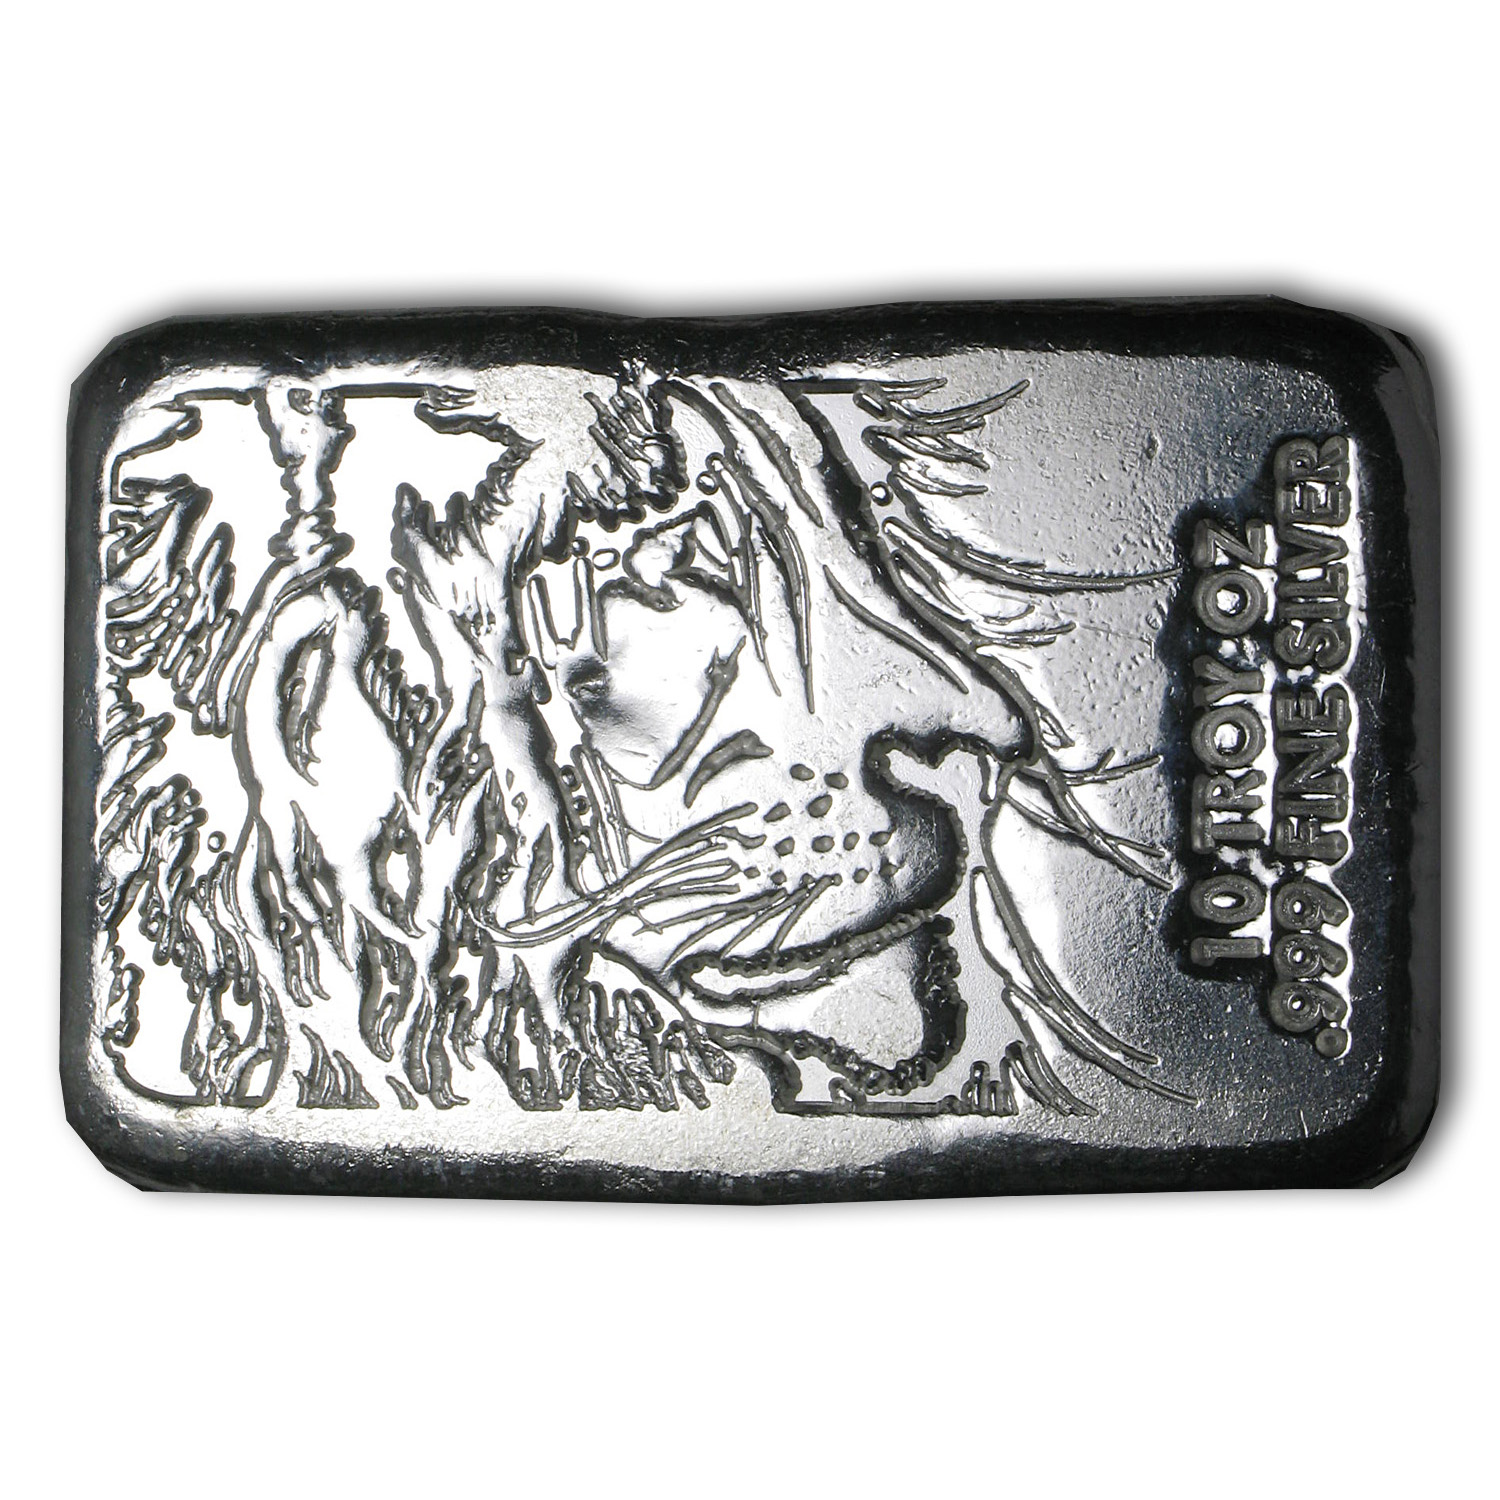 10 oz Silver Bar - Atlantis Mint (Lion)